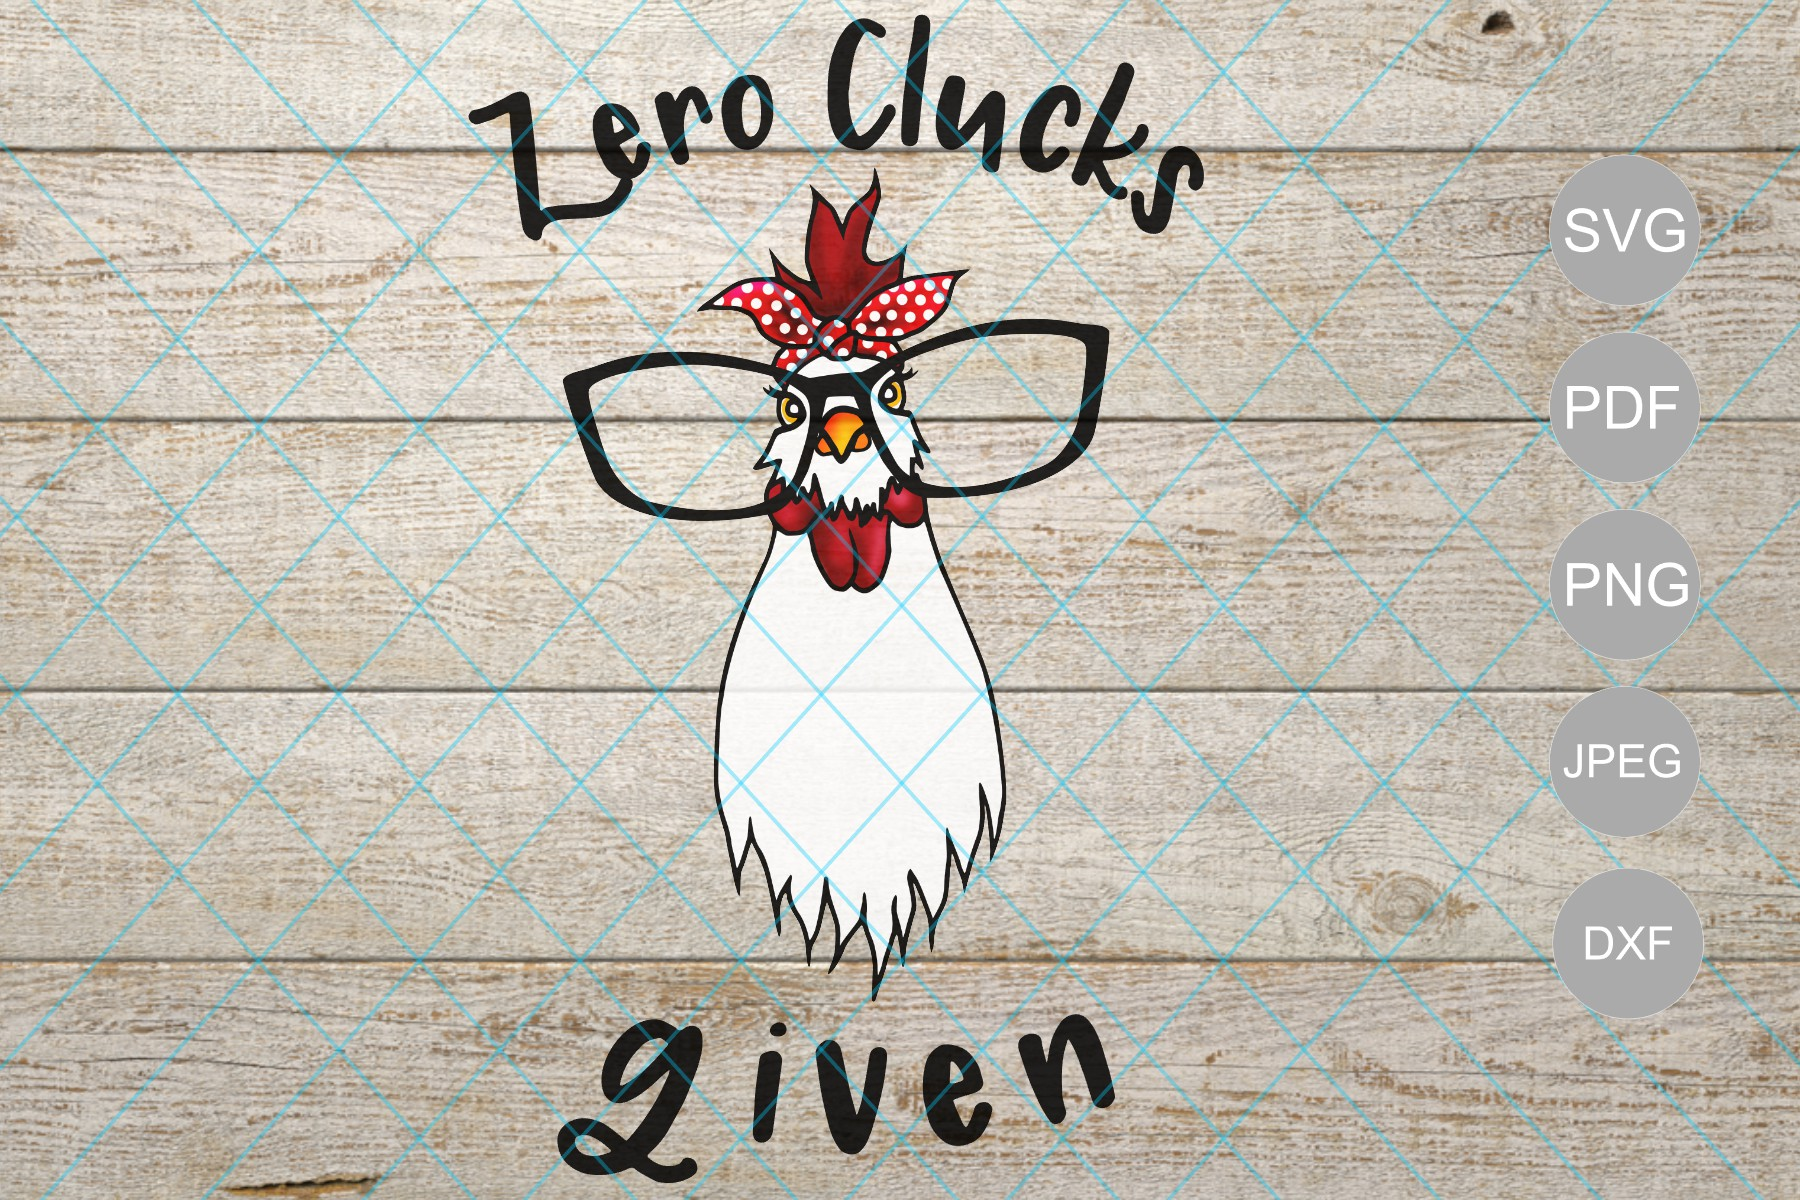 Download Free Zero Clucks Given Chicken With Glasses And Bandana Svg Dxg File for Cricut Explore, Silhouette and other cutting machines.